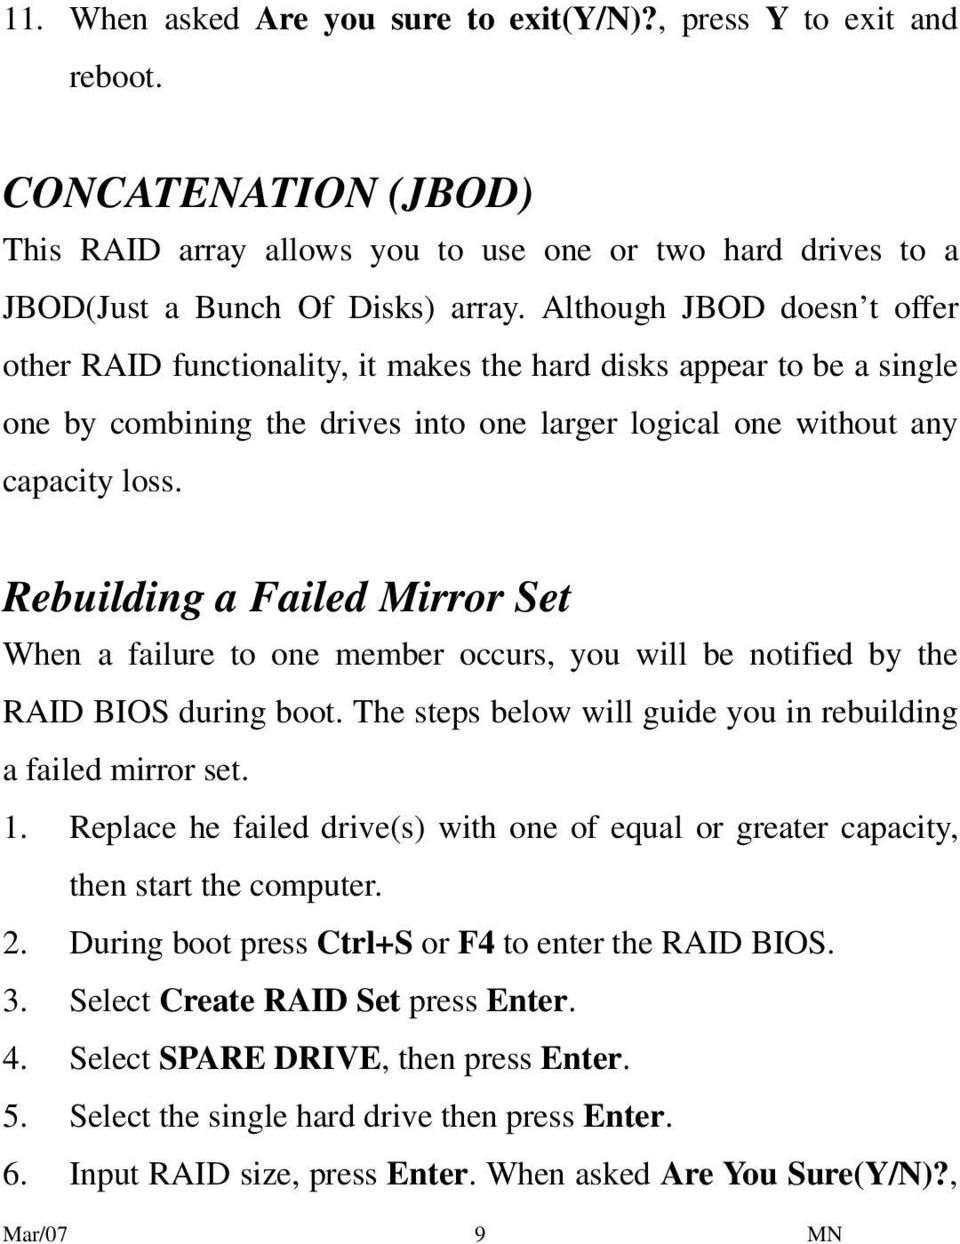 Rebuilding a Failed Mirror Set When a failure to one member occurs, you will be notified by the RAID BIOS during boot. The steps below will guide you in rebuilding a failed mirror set. 1.